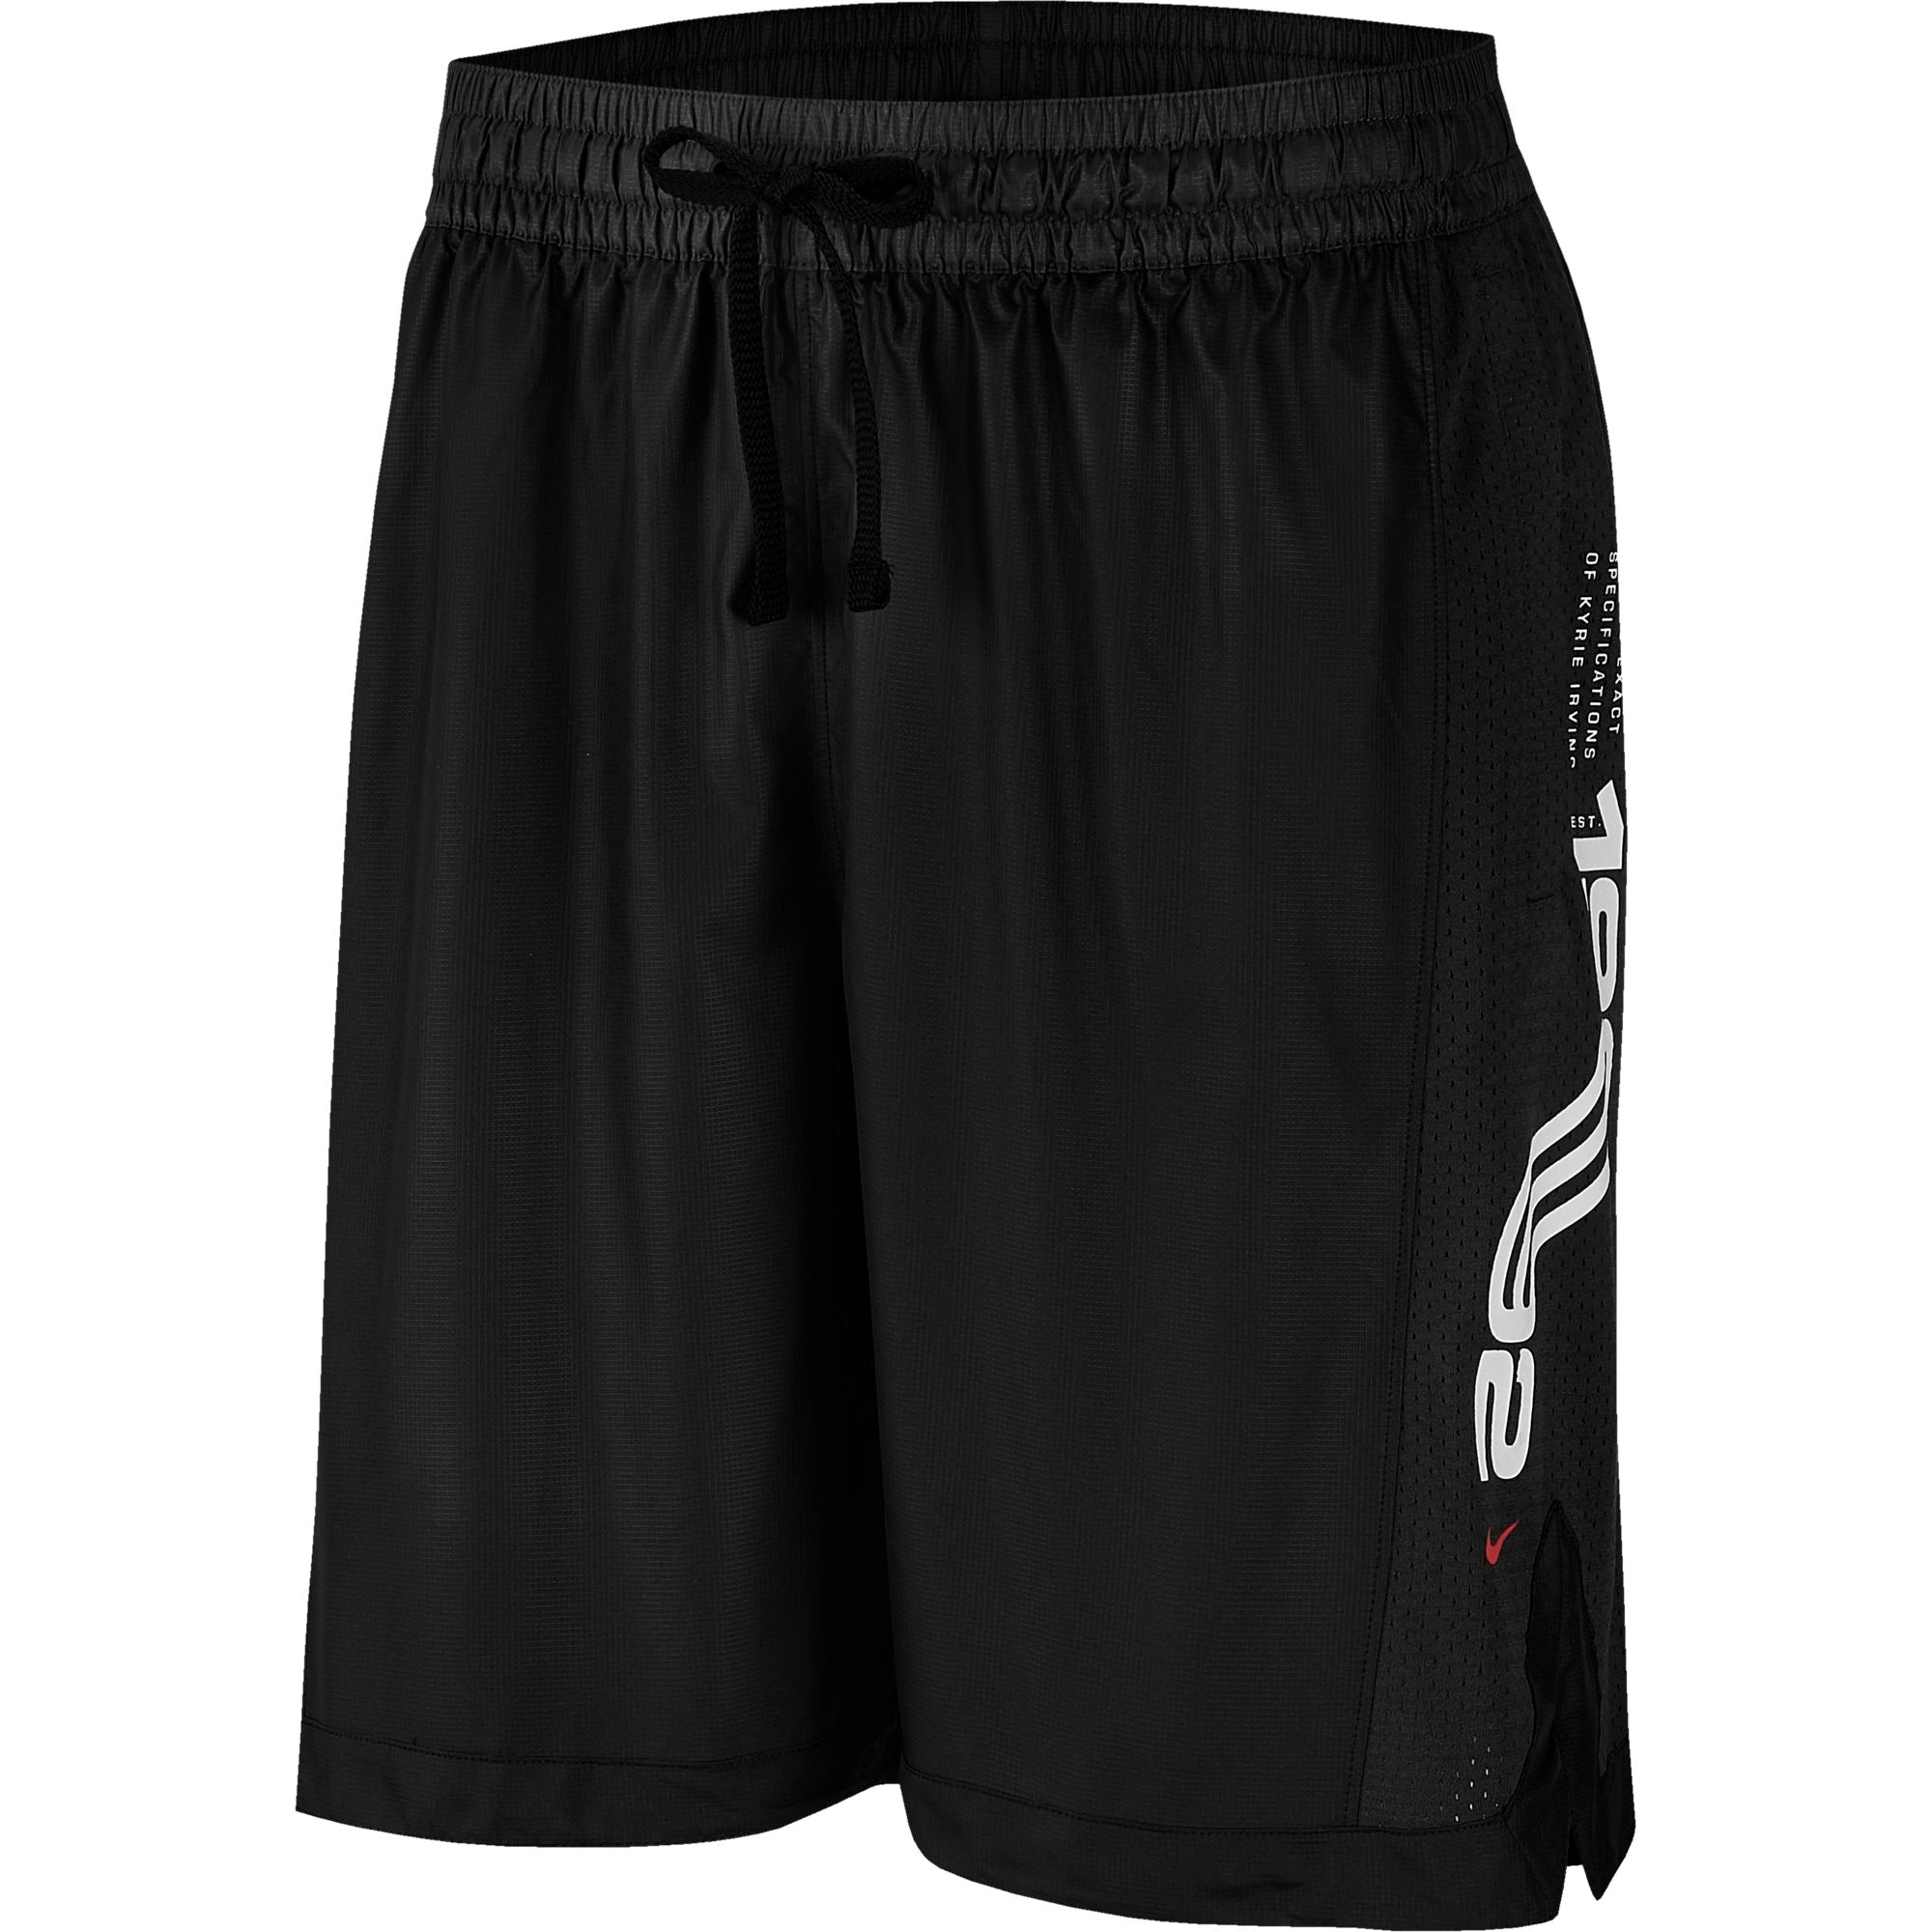 Nike Kyrie Dri-Fit Basketball Shorts - NK-BV9292-010